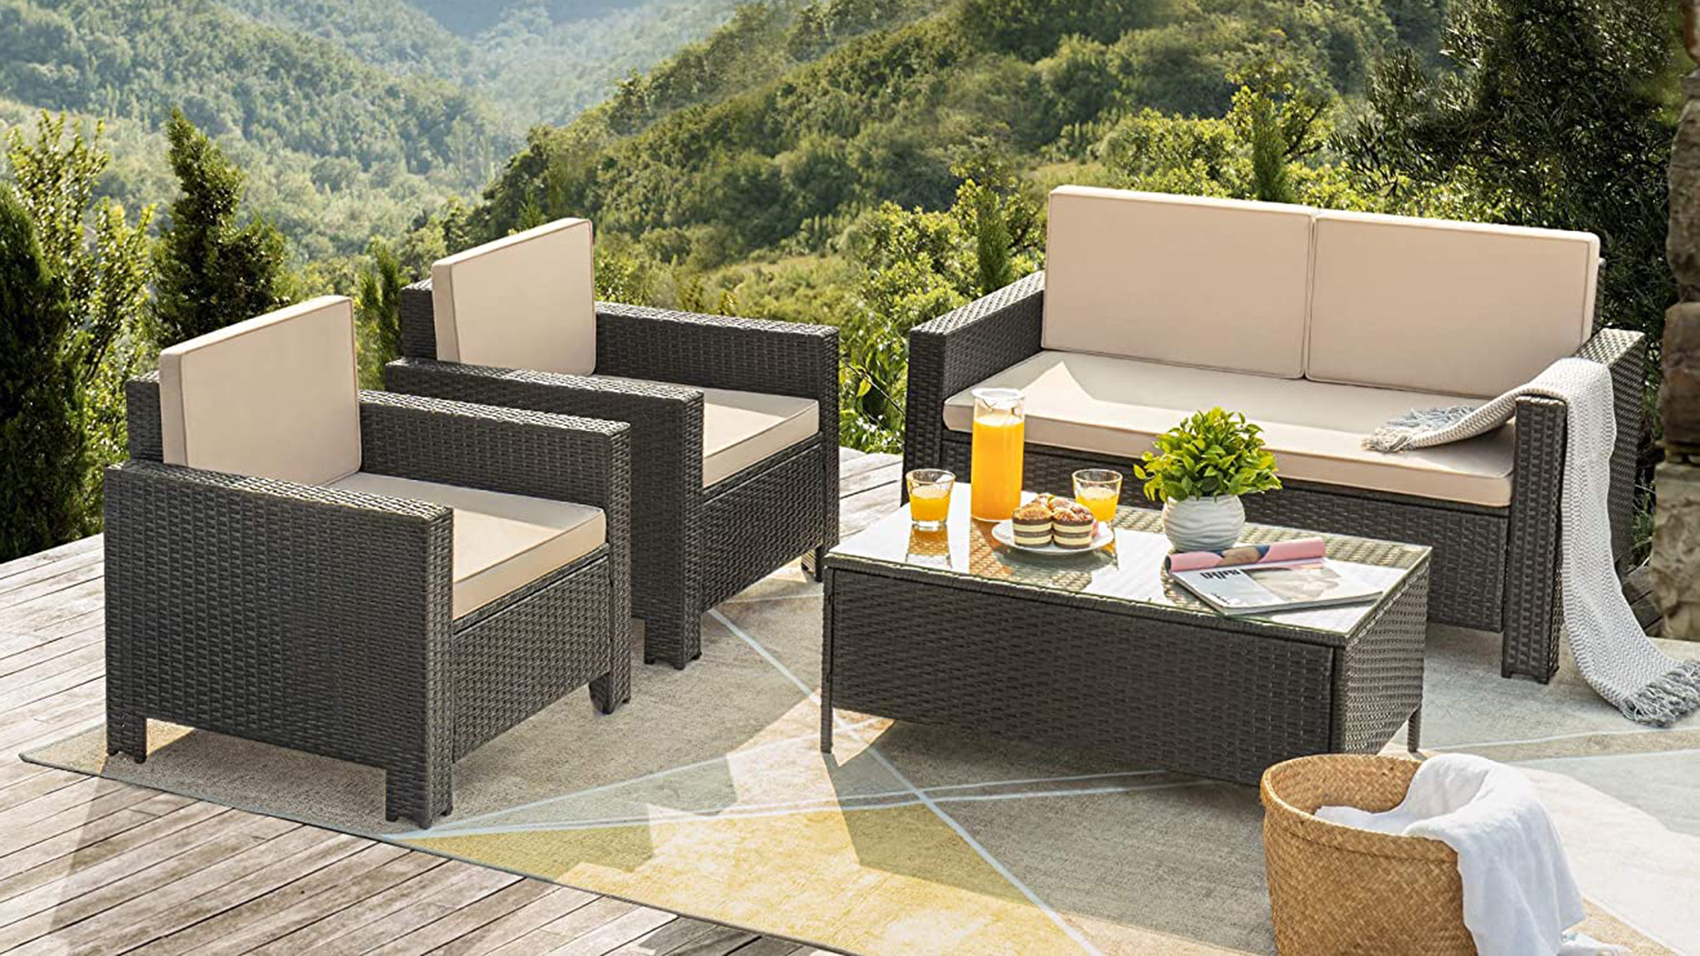 Best Outdoor Dining Sets Top Picks From Amazon Wayfair Target And More Cnn Underscored